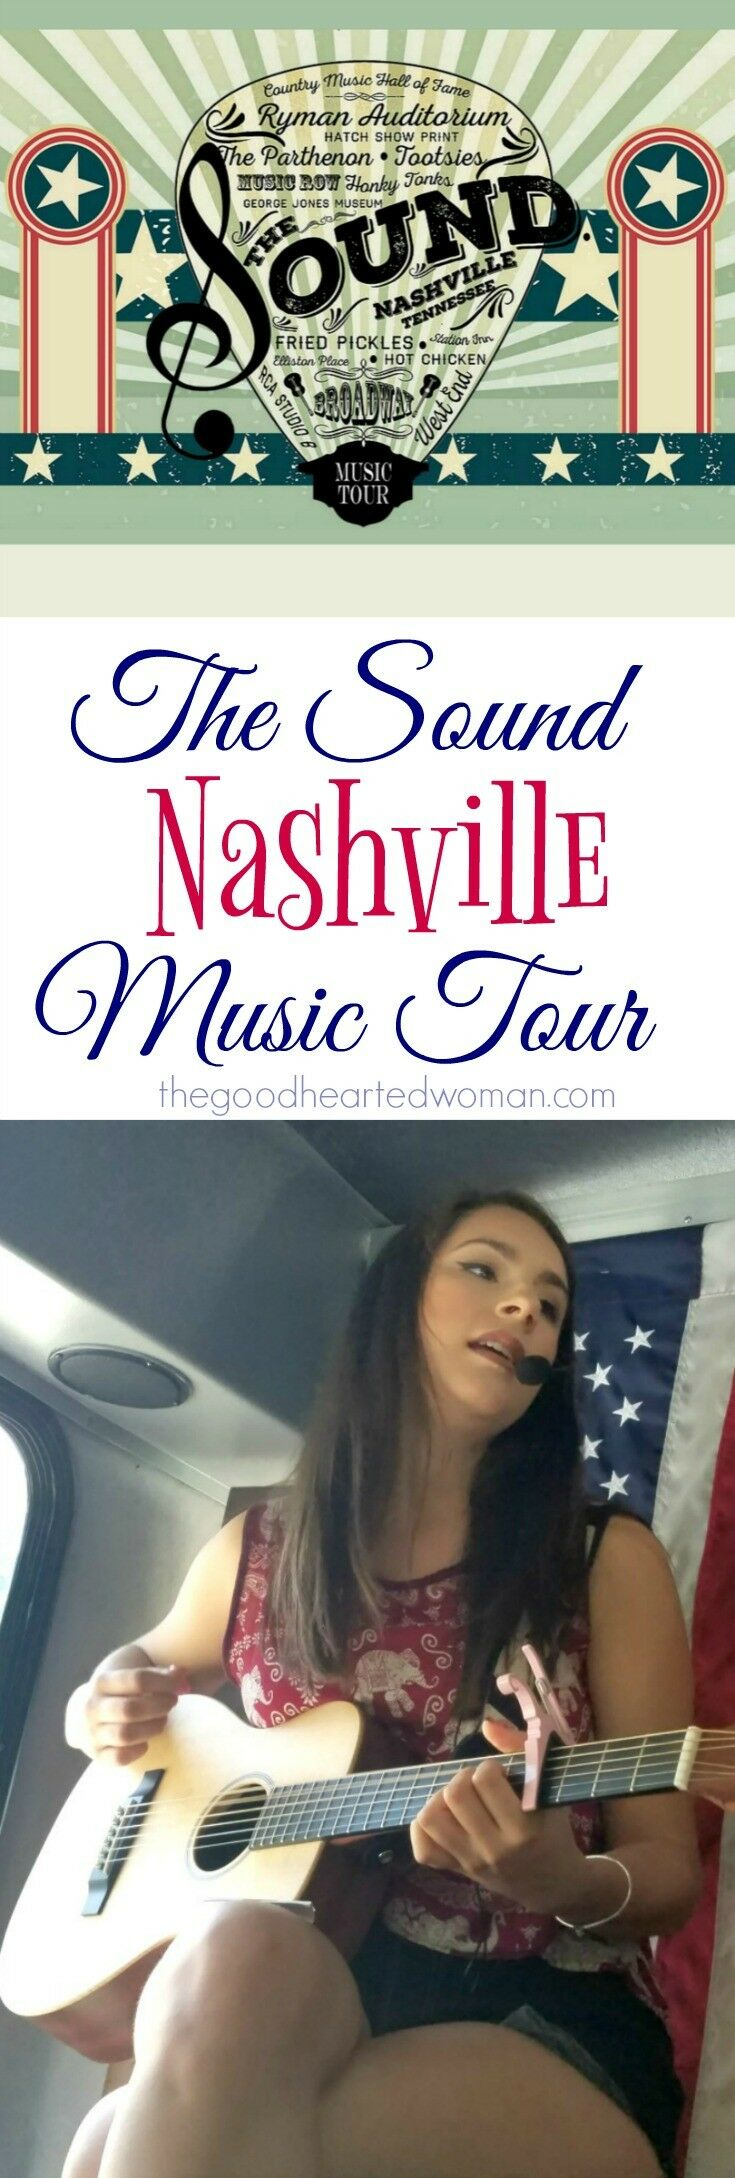 The Sound Nashville Music Tour | The Good Hearted Woman